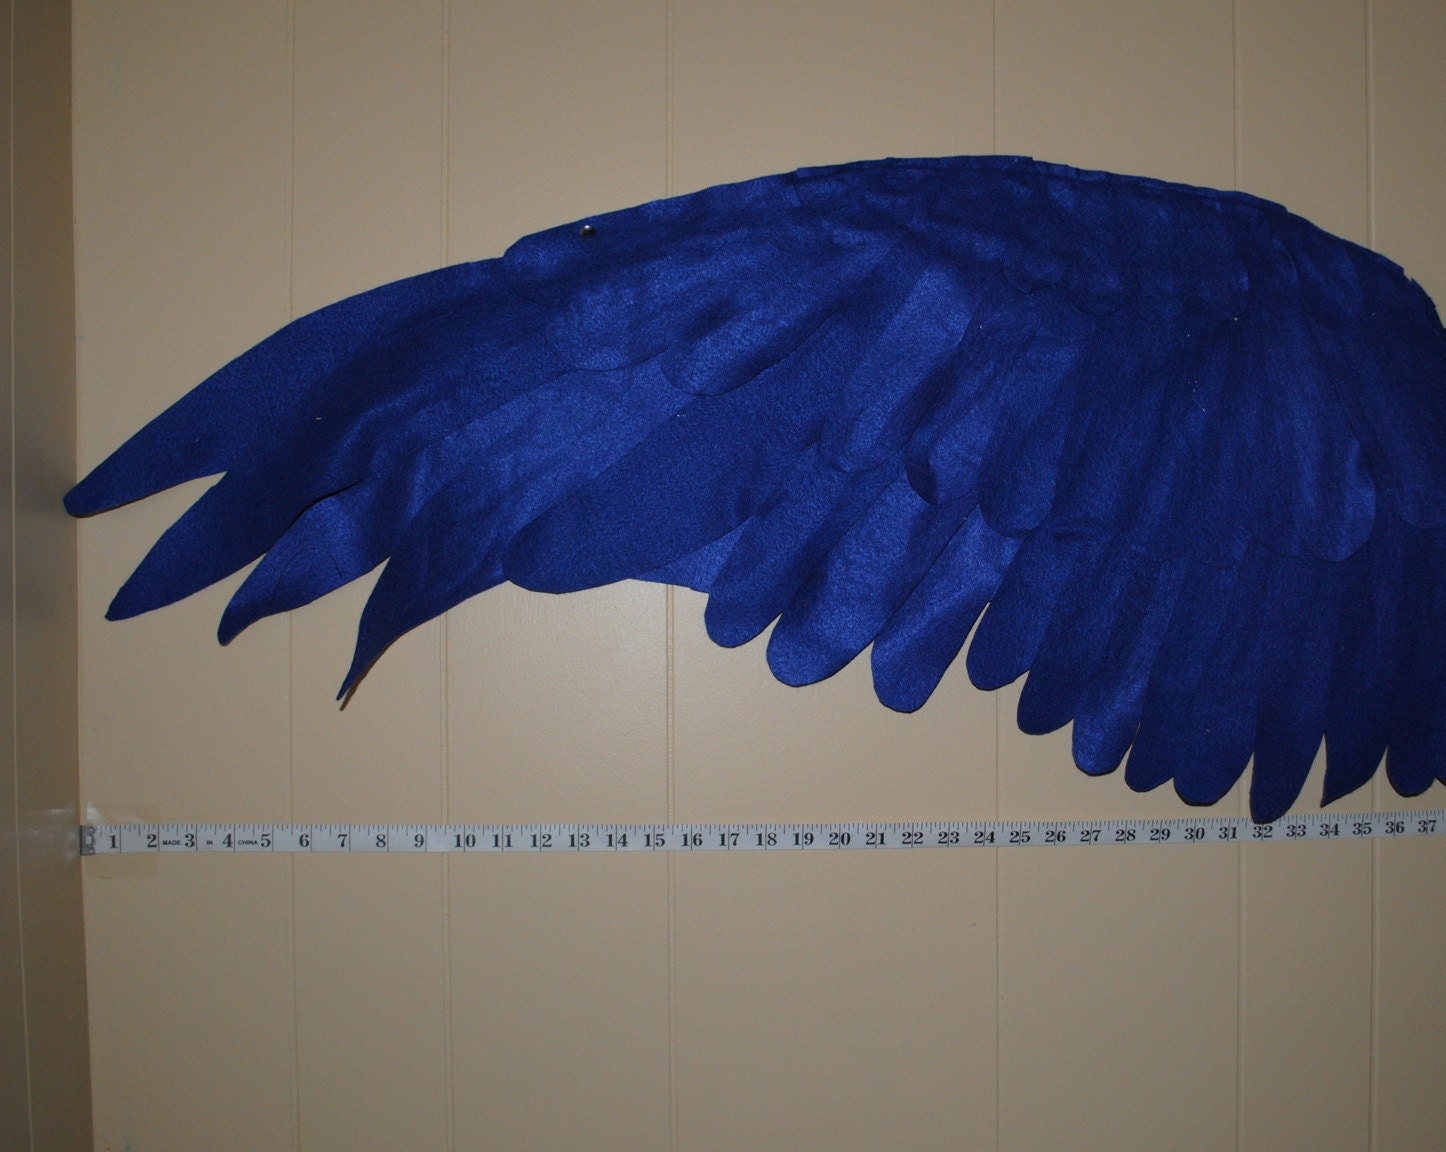 Eri of Llevo el invierno has a diy tutorialpattern available on her site for these super fun bird wings for kids